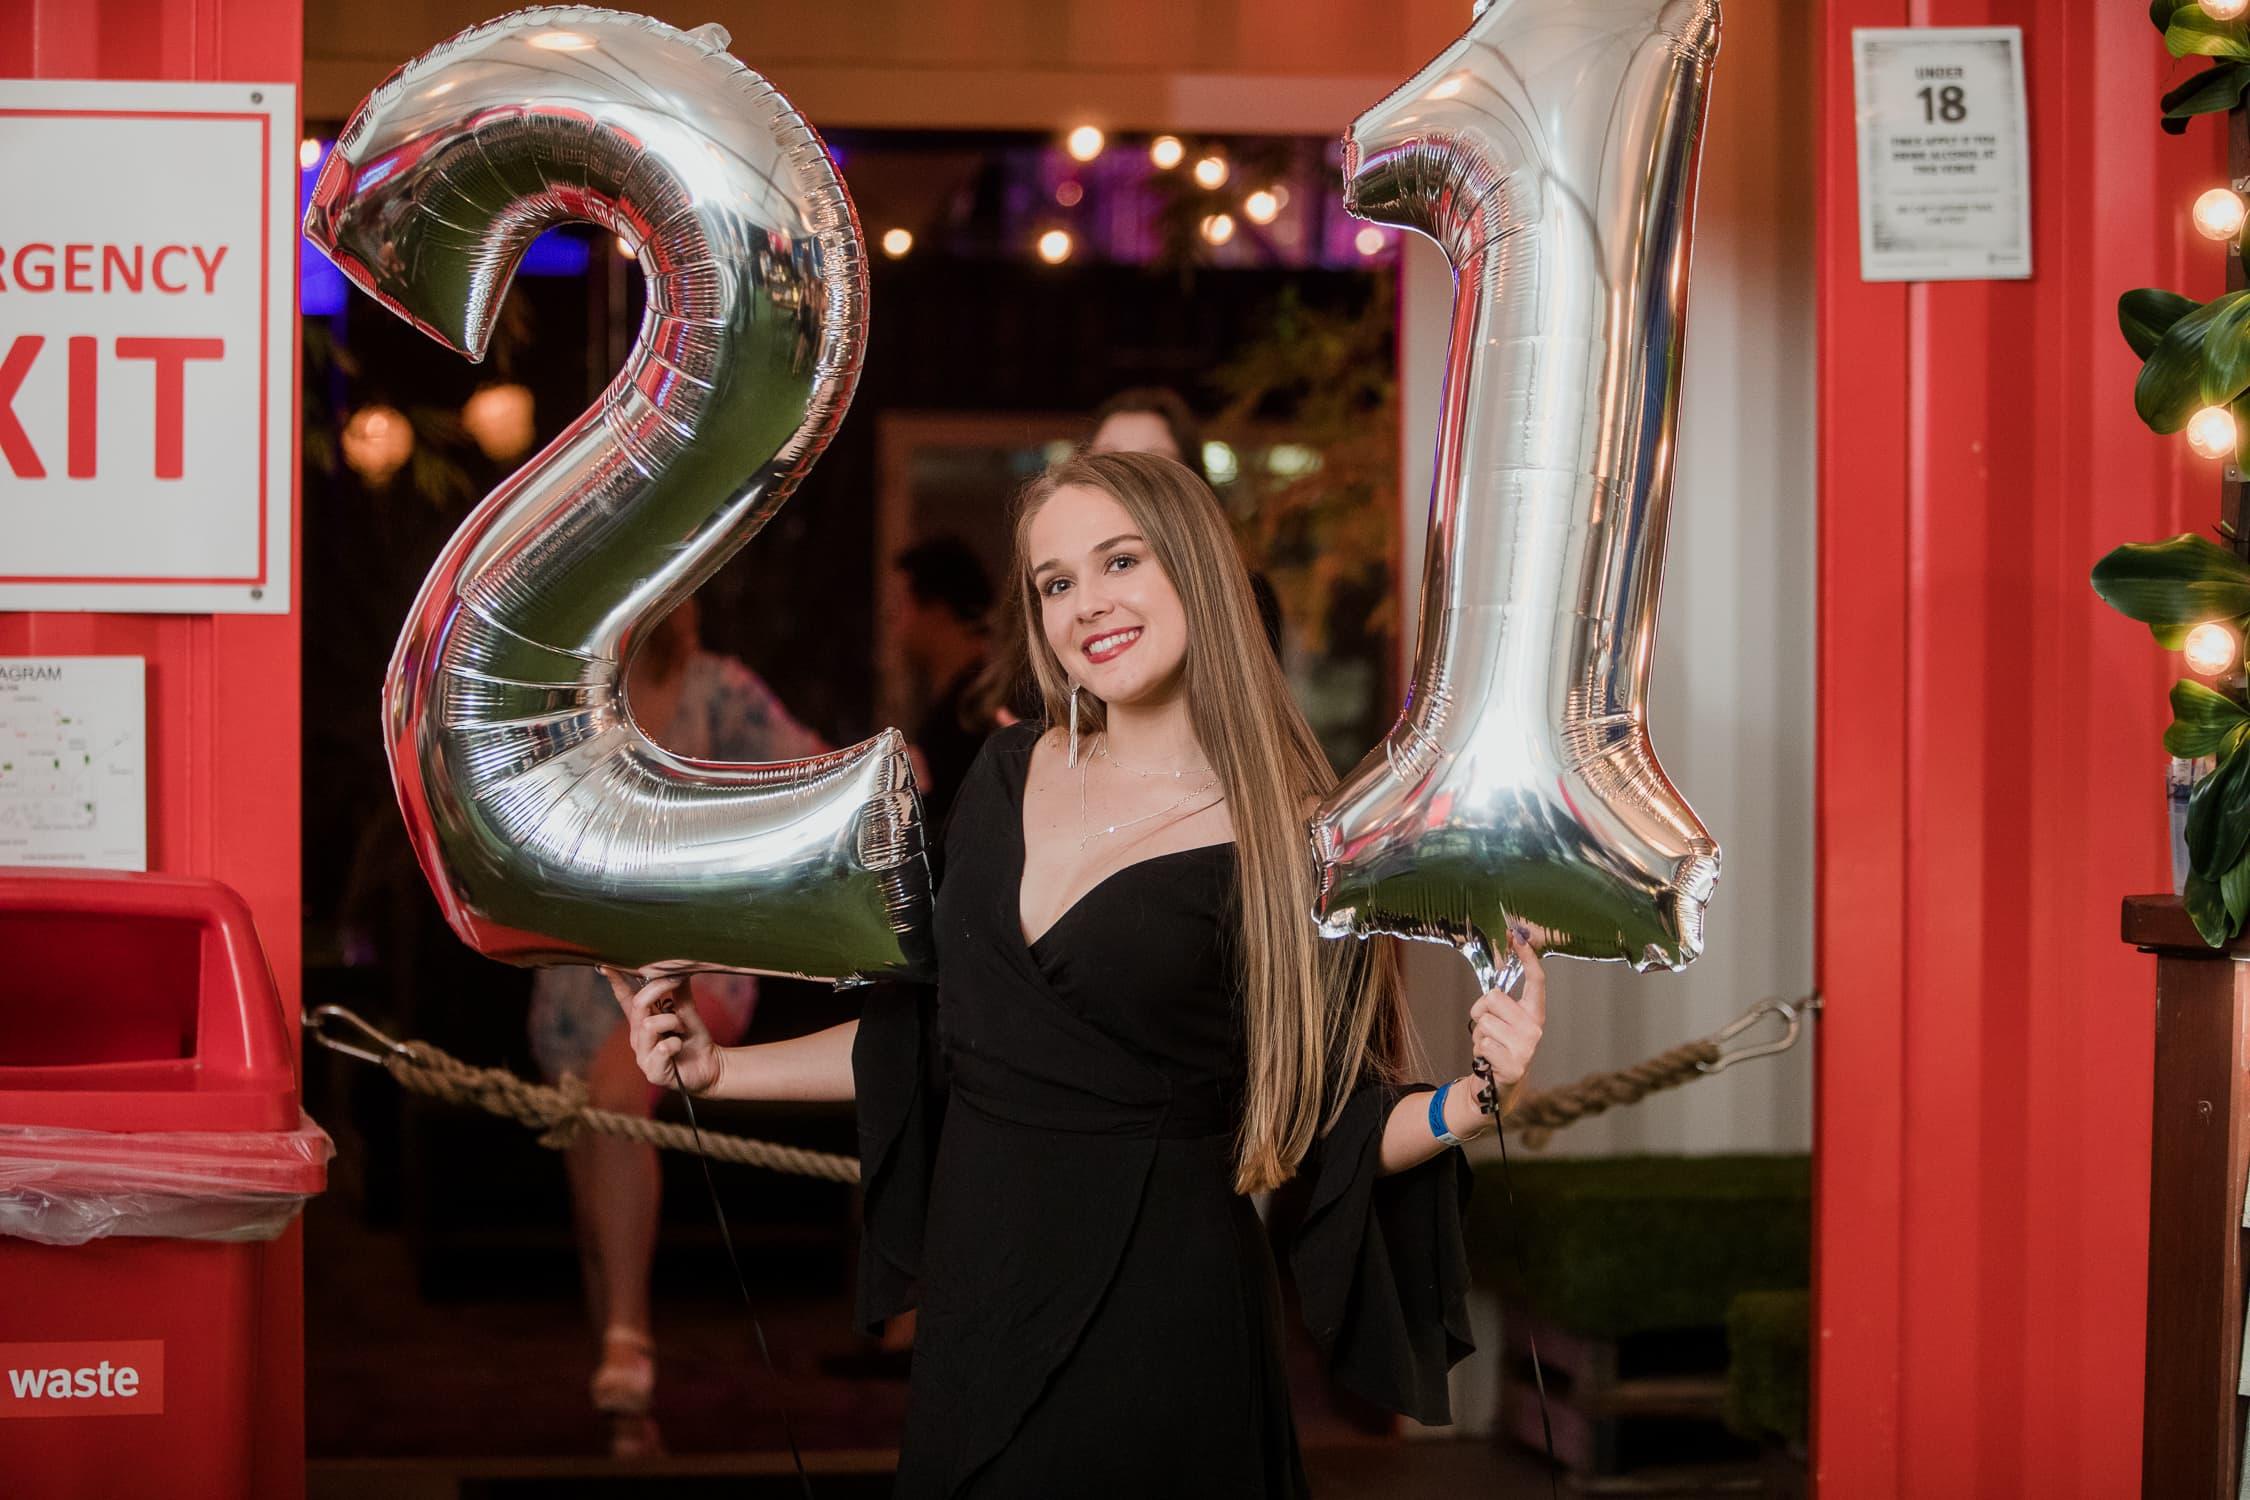 21st Party Photography Brisbane and Gold Coast